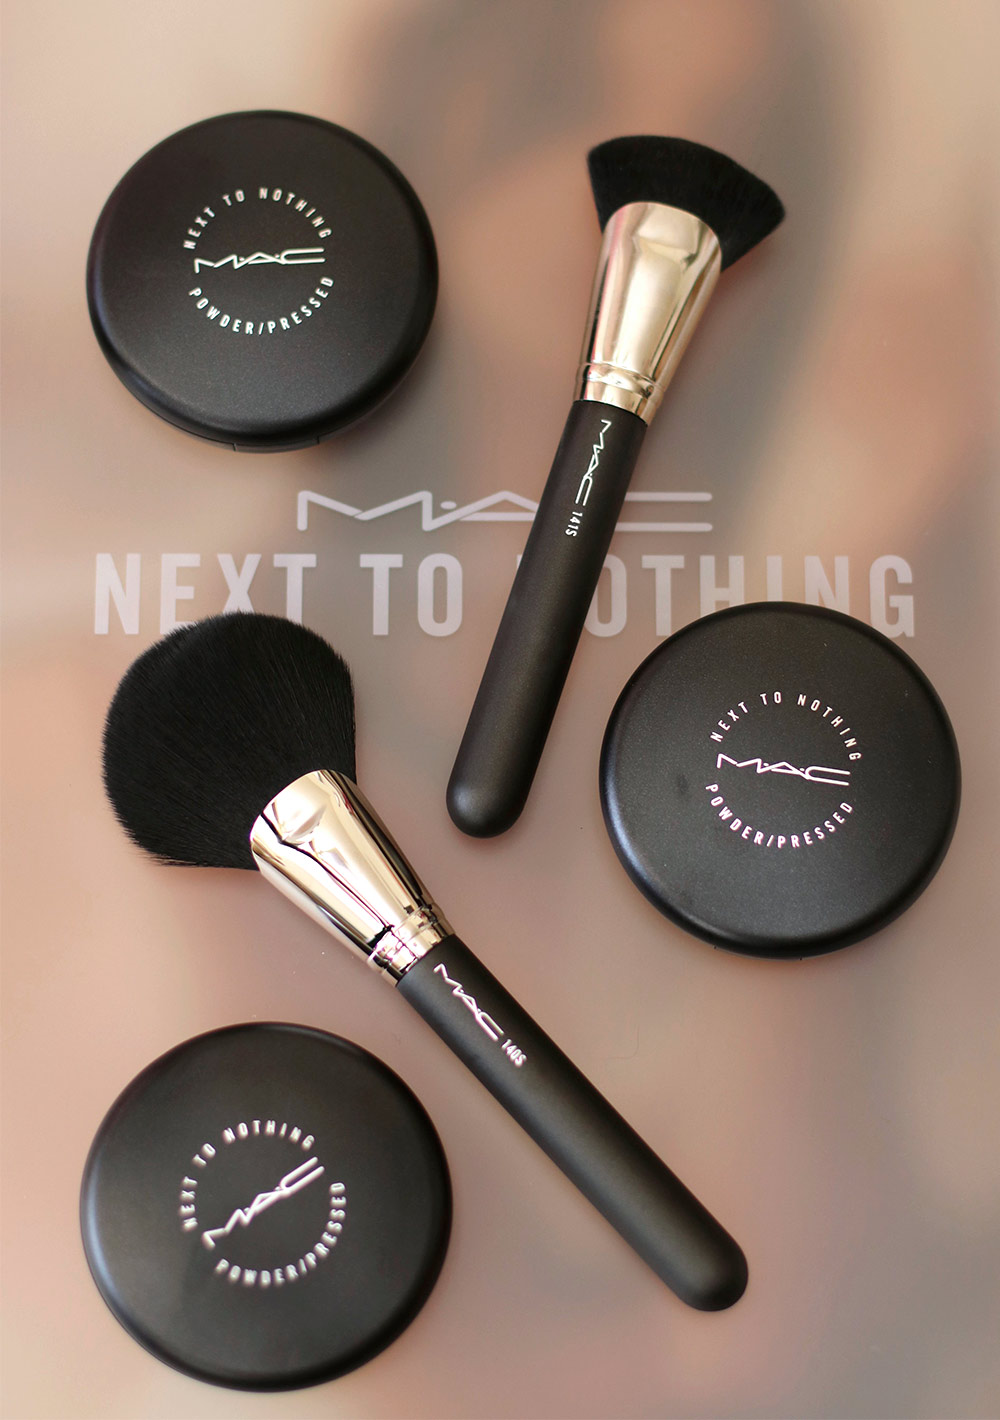 Mac next to nothing collection face colours pressed powders and fan mac next to nothing fan brush nvjuhfo Gallery